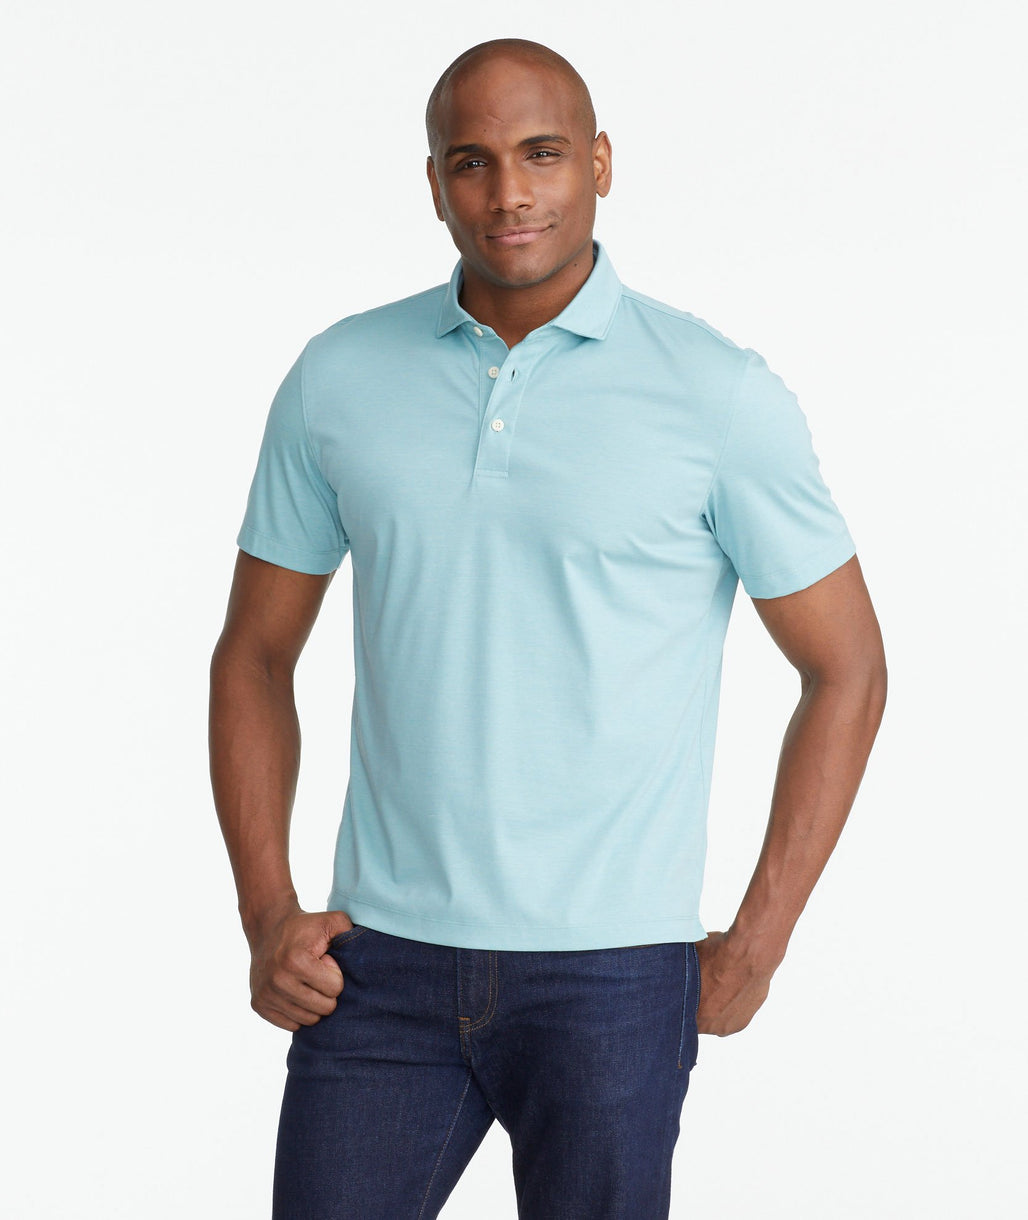 A model wearing a Green Luxe Wrinkle-Free Pique Polo